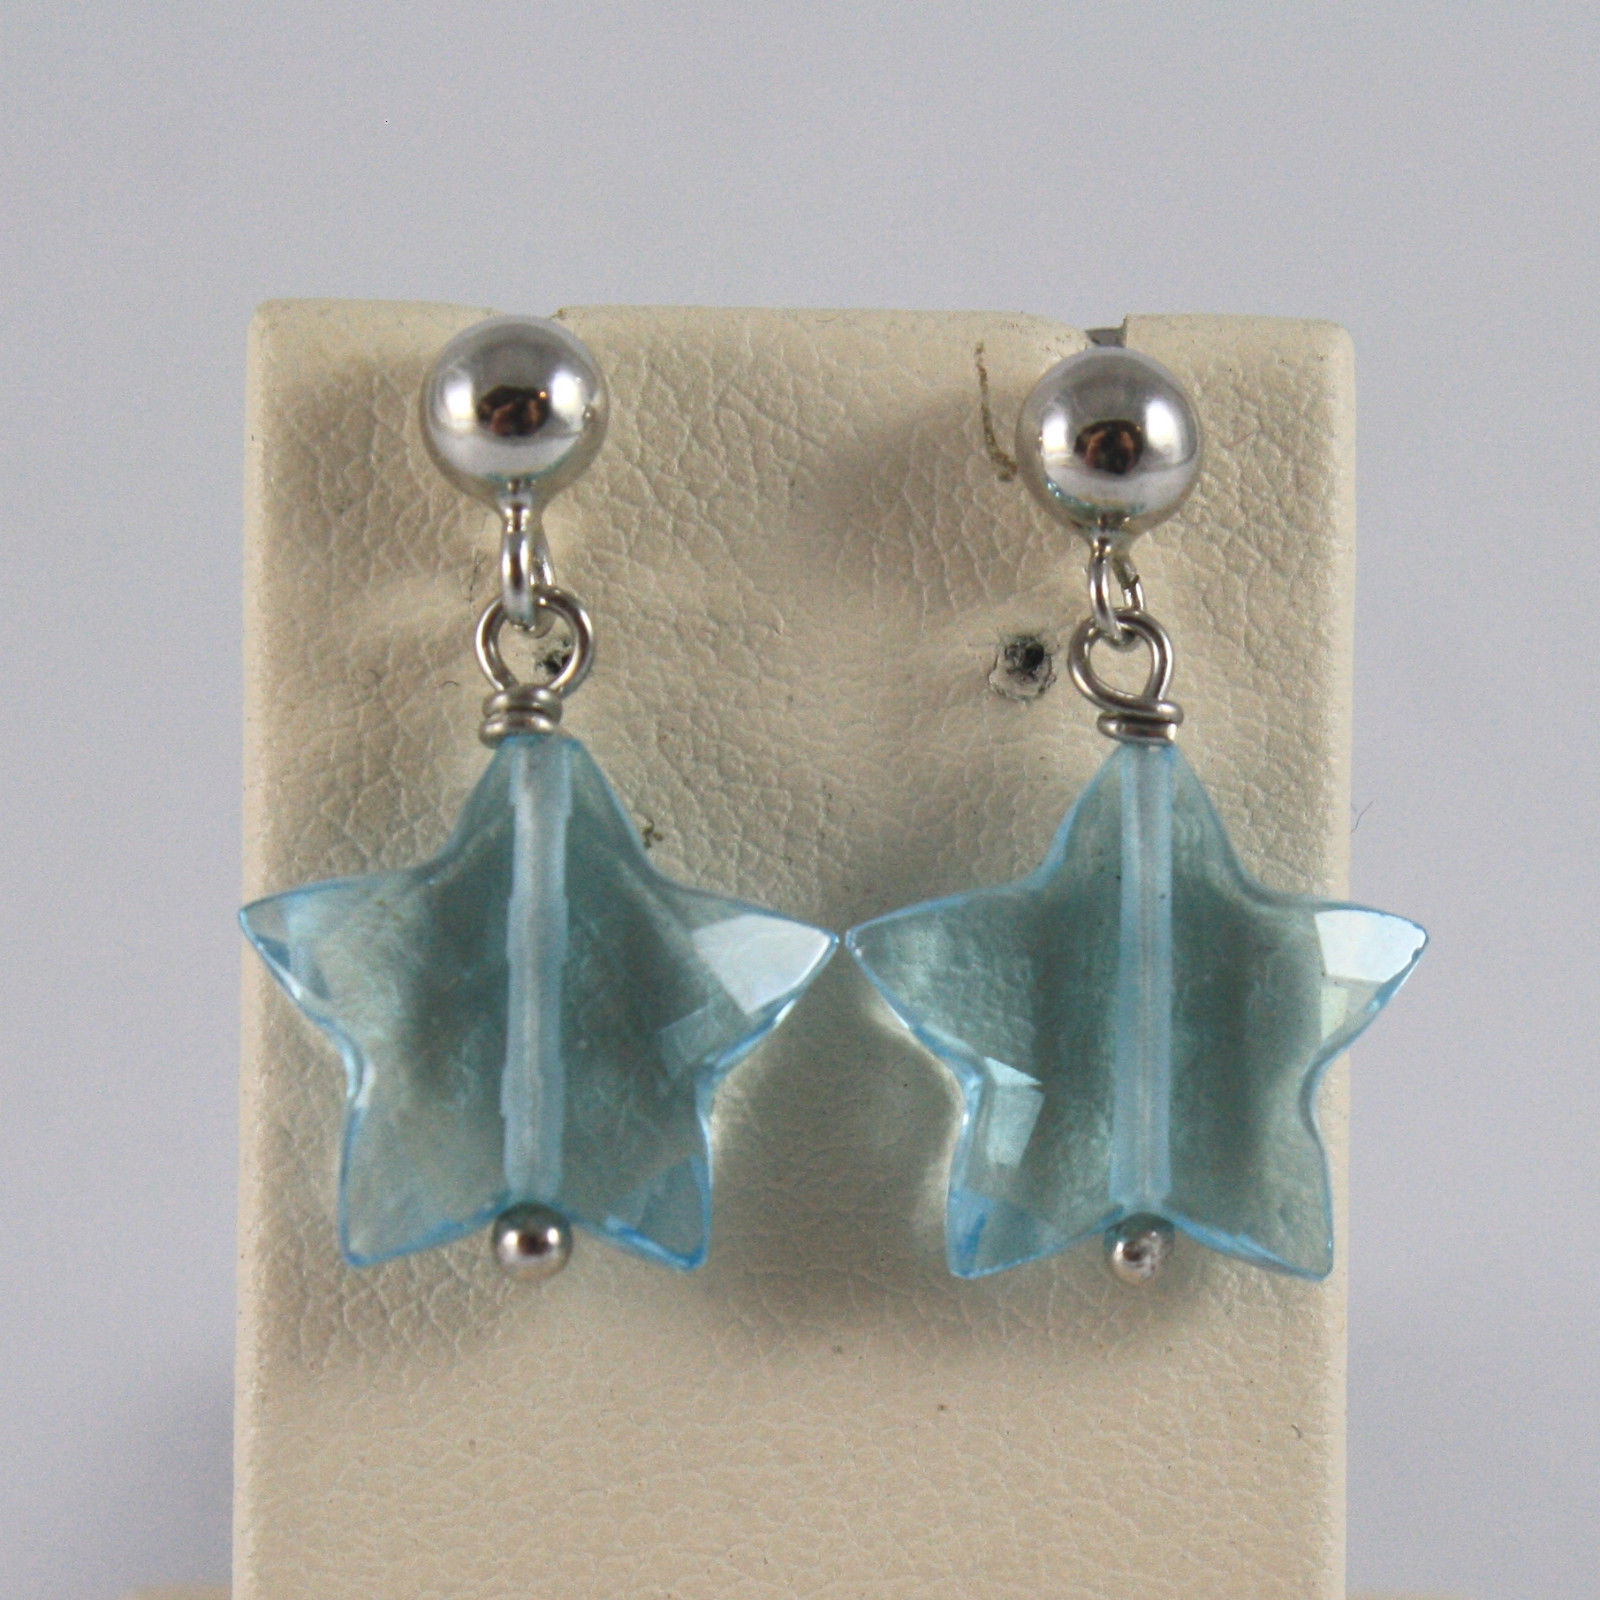 SOLID 18K WHITE GOLD EARRINGS, WITH STARS OF BLUE TOPAZ, MADE IN ITALY